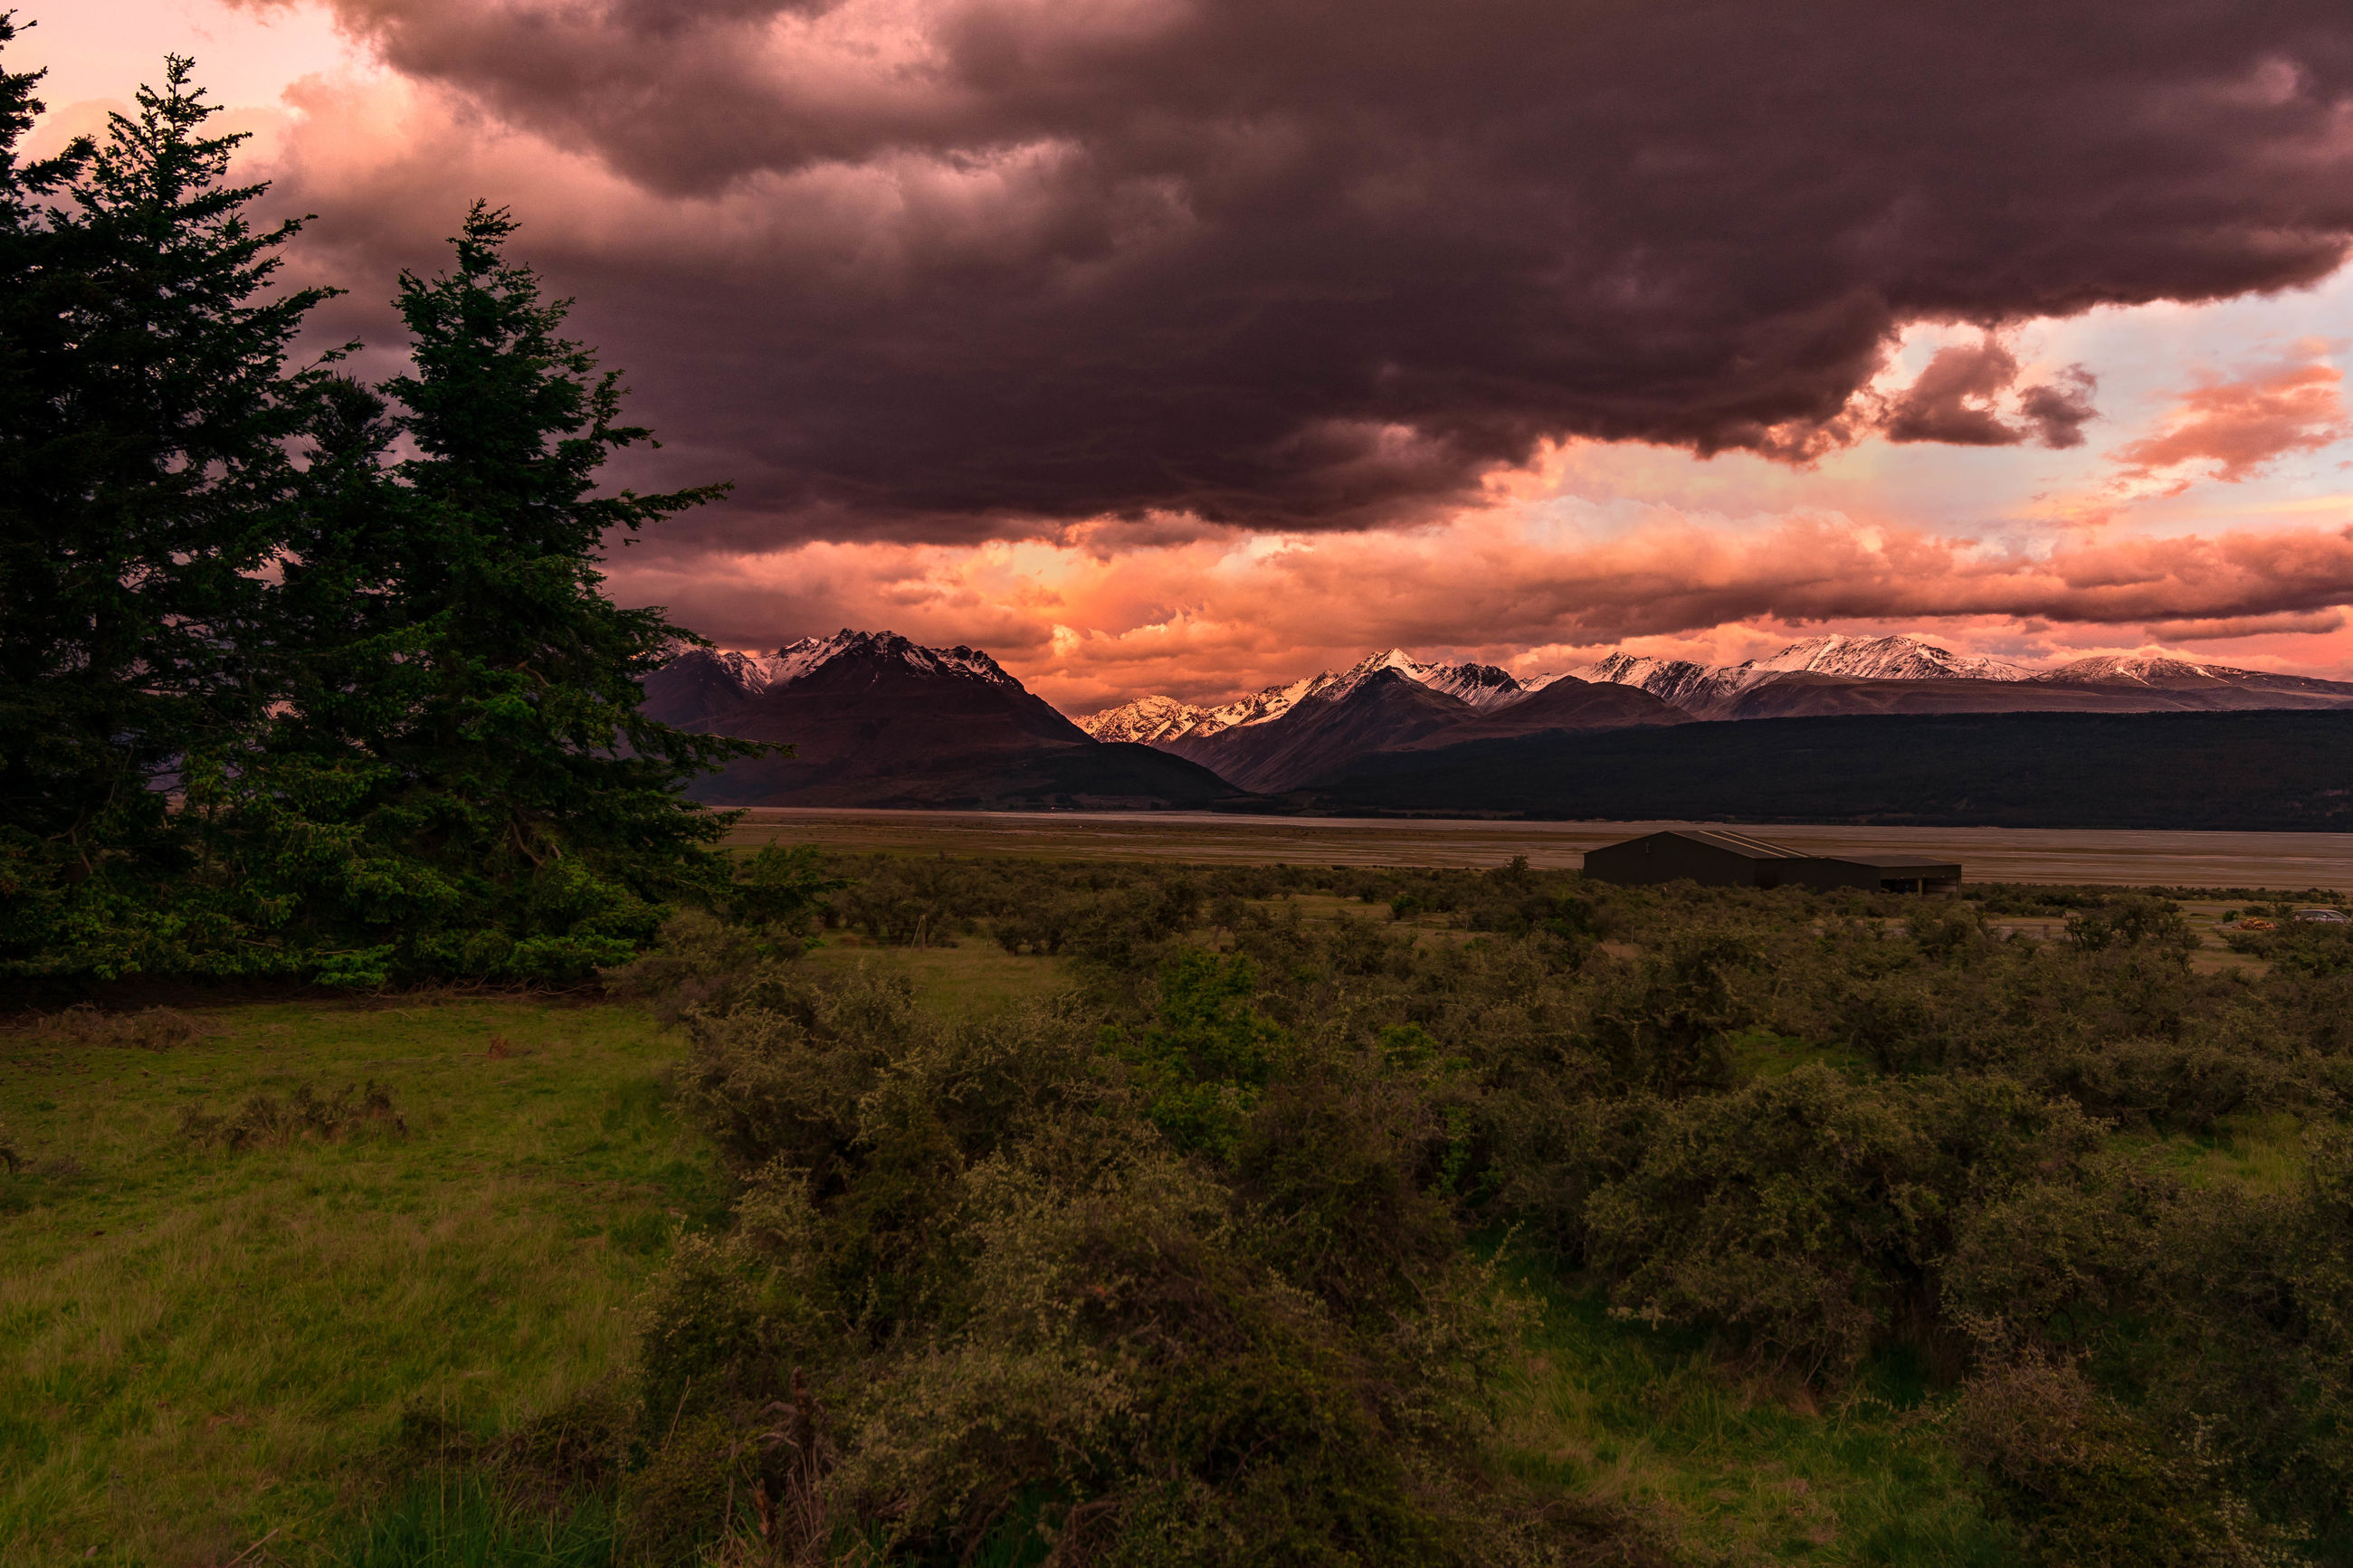 Scenic view of dramatic landscape against romantic sky